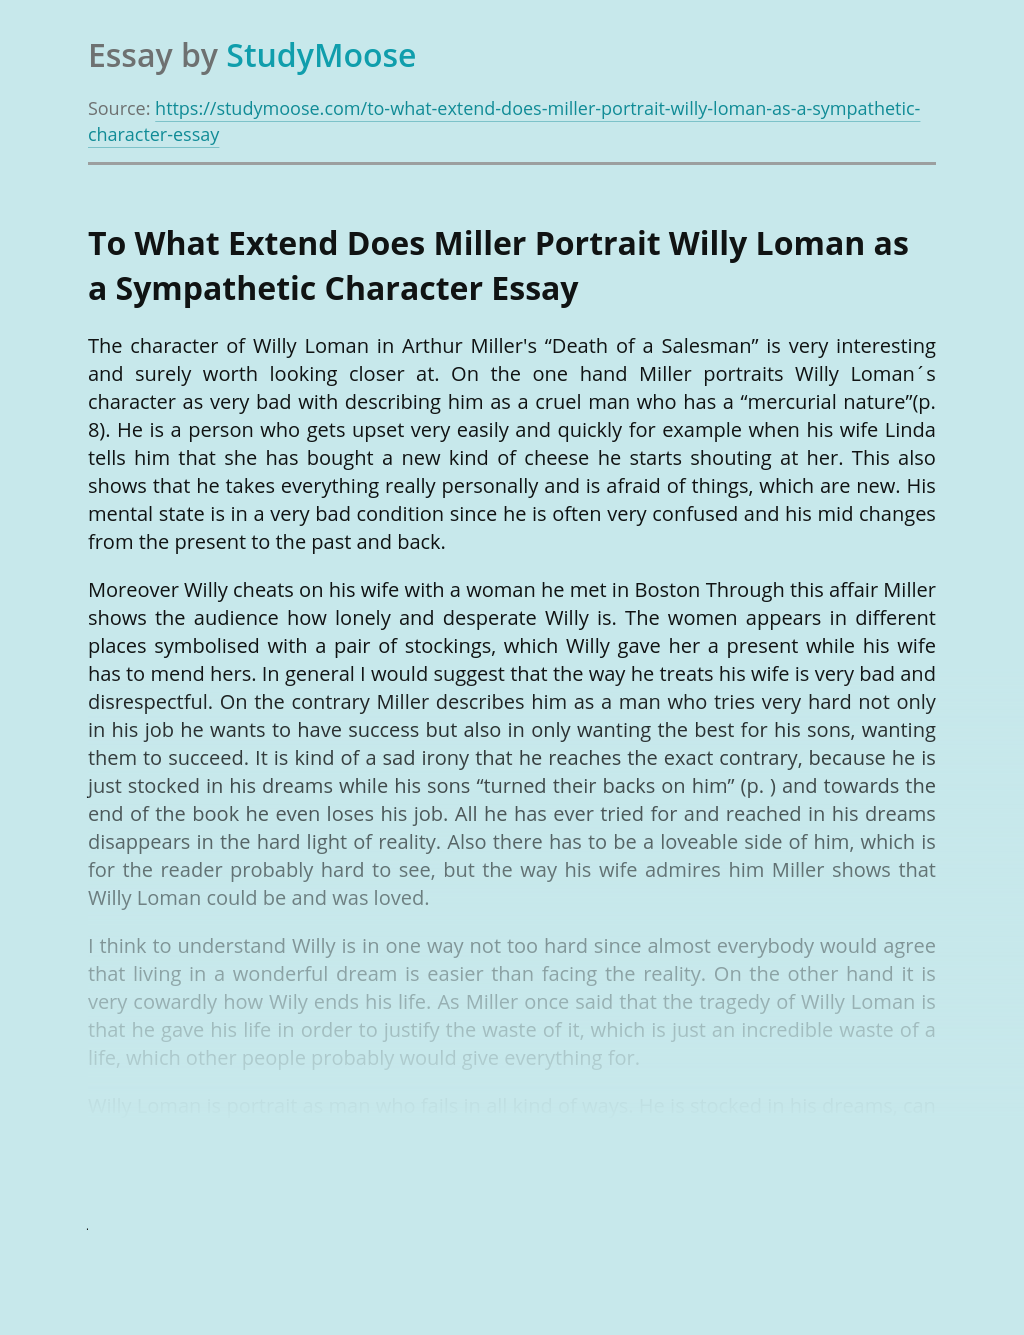 To What Extend Does Miller Portrait Willy Loman as a Sympathetic Character